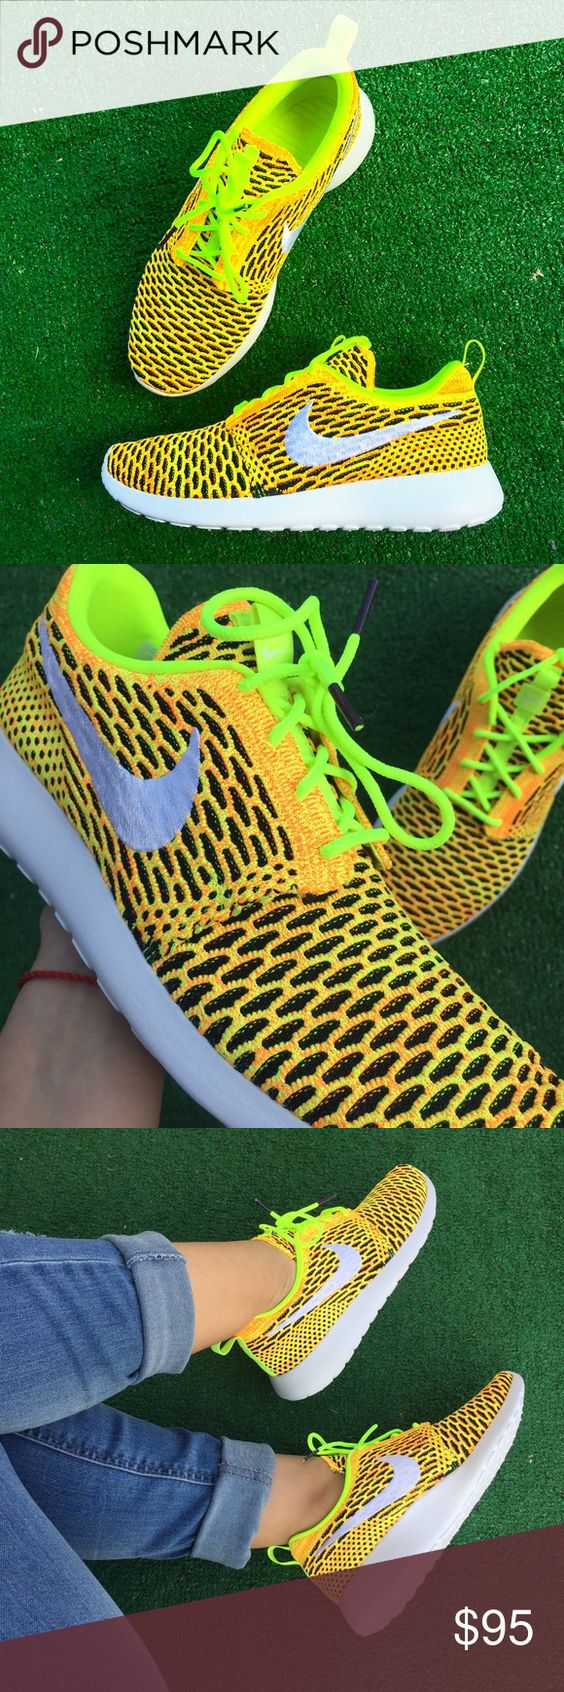 Women's Nike Roshe one Flyknit sneakers •Brand new •Authentic •Box not included Nike Shoes Sneakers